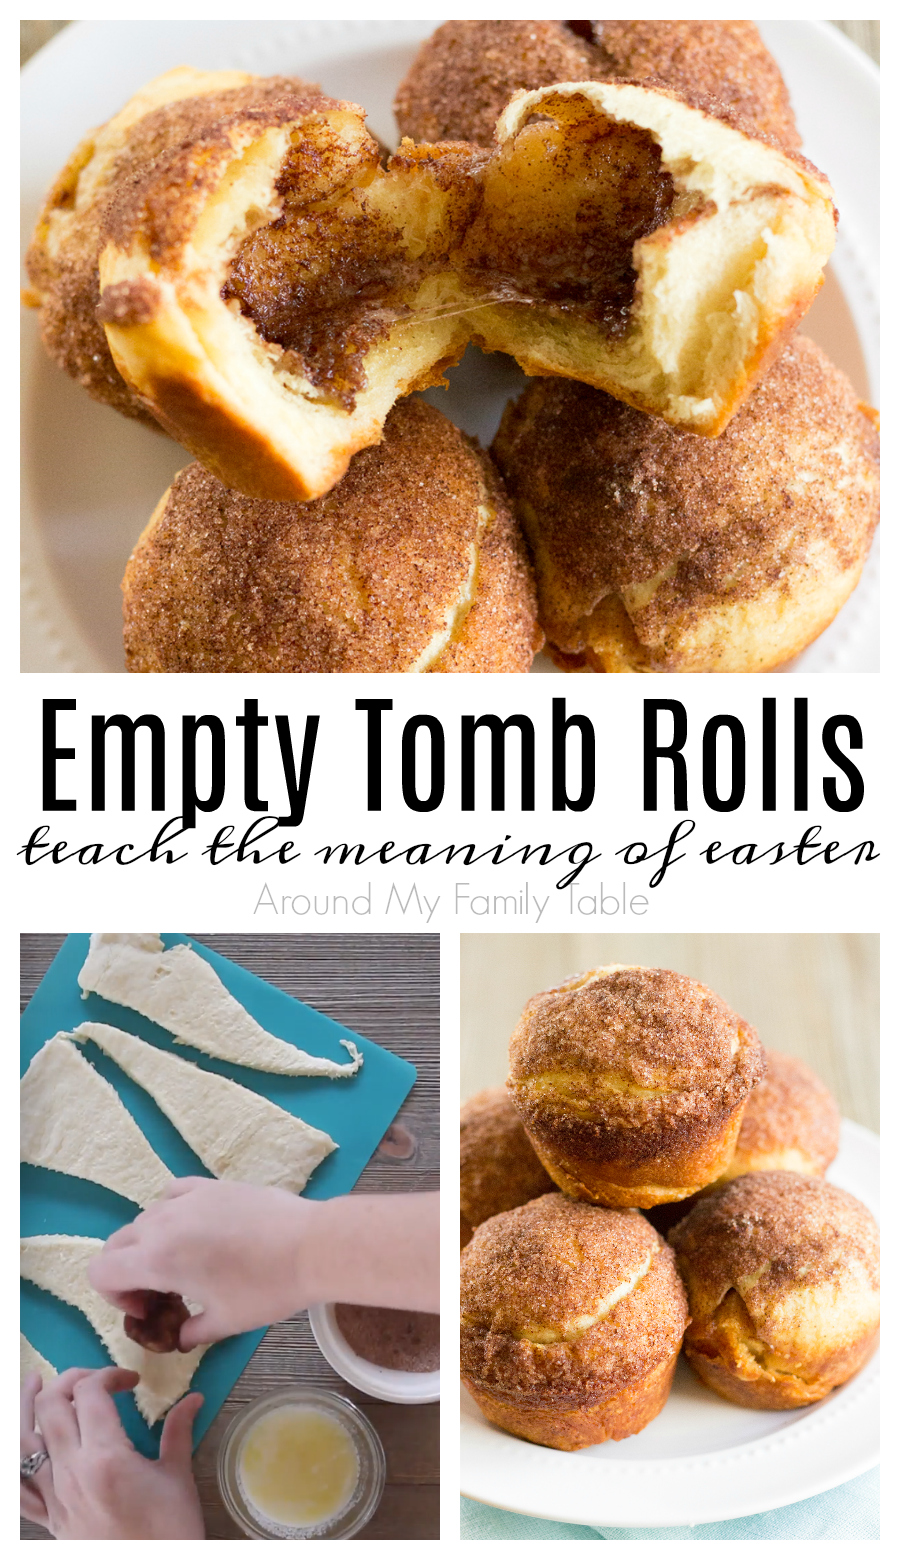 These delicious rolls are the perfect object lesson for kids on Easter morning that teaches the reason for celebrating Easter.  My Empty Tomb Rolls are a tradition in our family and have really become a family favorite. Plus I have a secret tip to help keep the rolls together while baking. #easter #emptytombrolls #resurrectionrolls #easterstory #christian via @slingmama